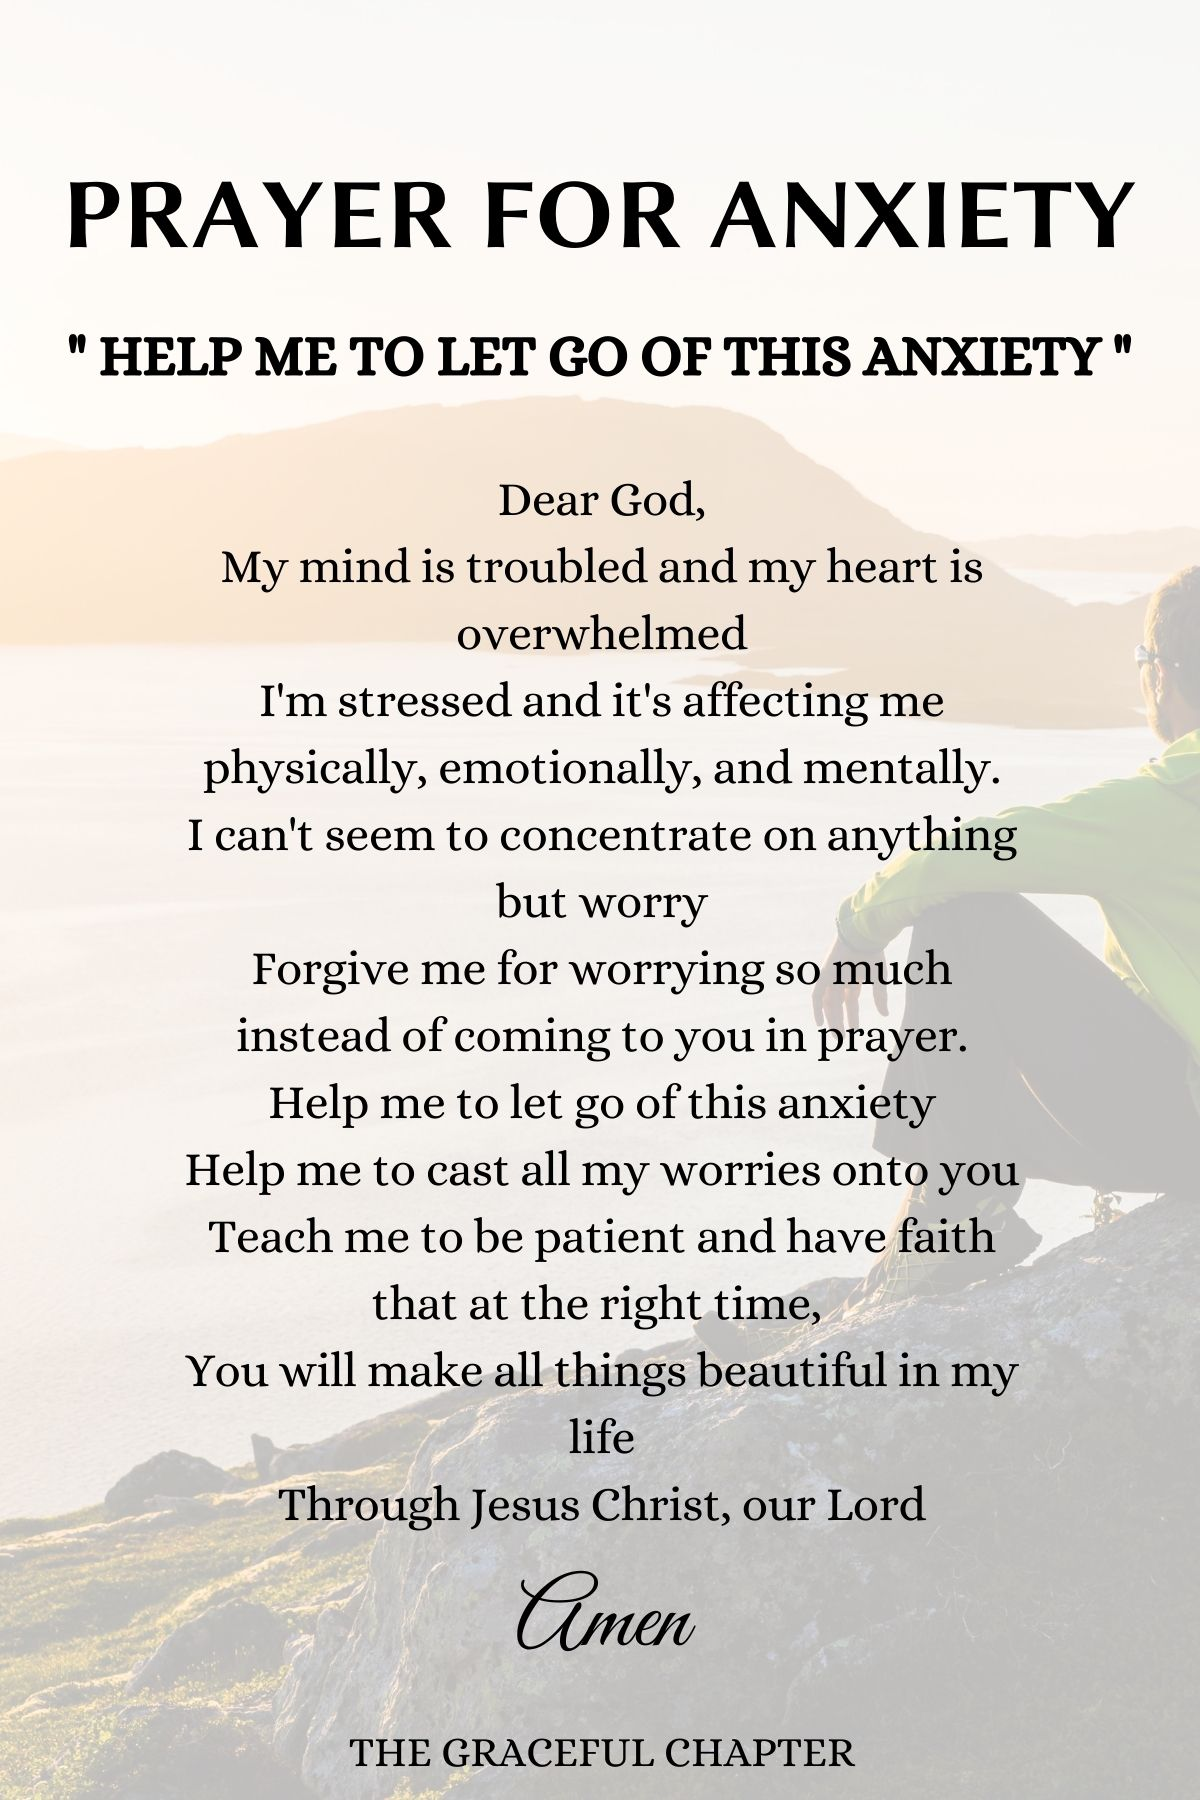 Anxiety prayer - Help me let go of this anxiety